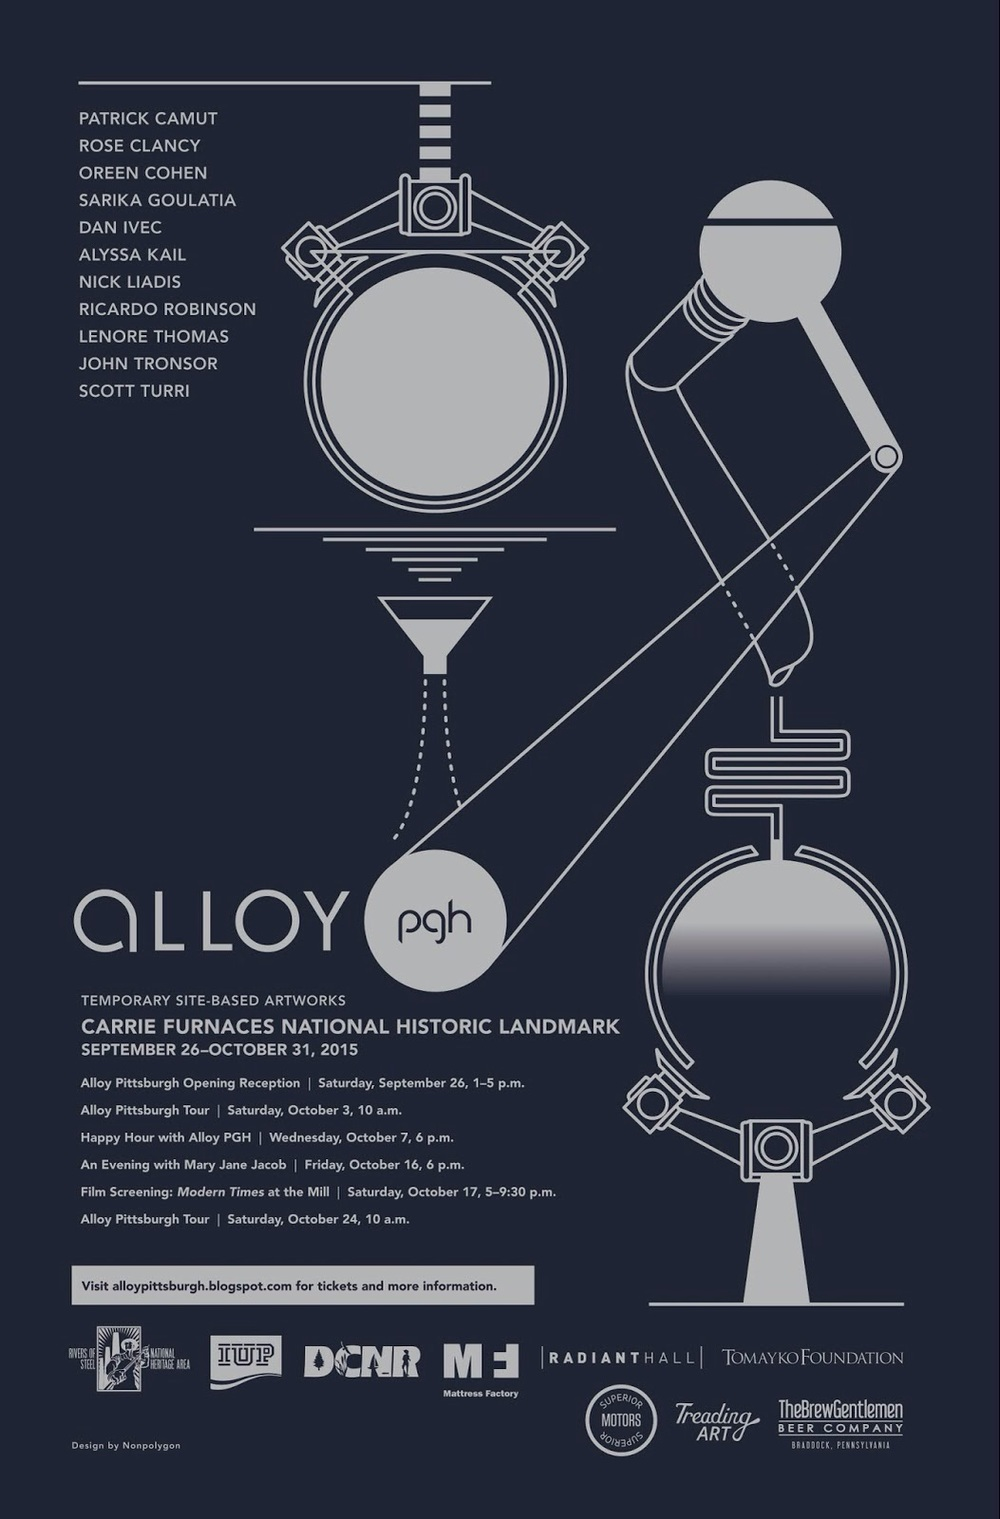 The official alloyPGH 2015 poster!